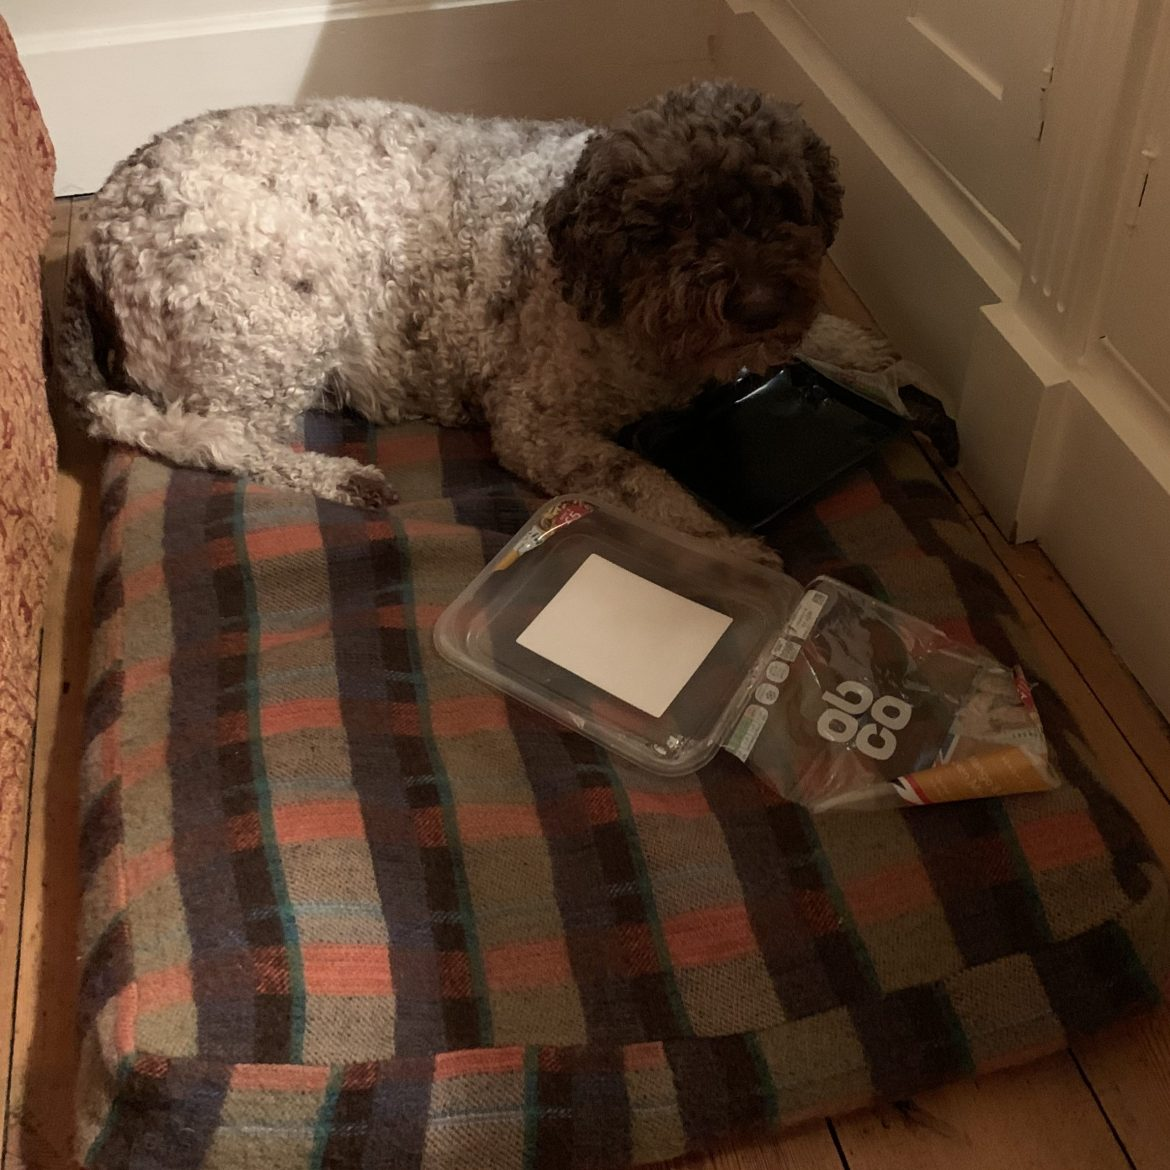 Lottie on her old bed with foraging trophy